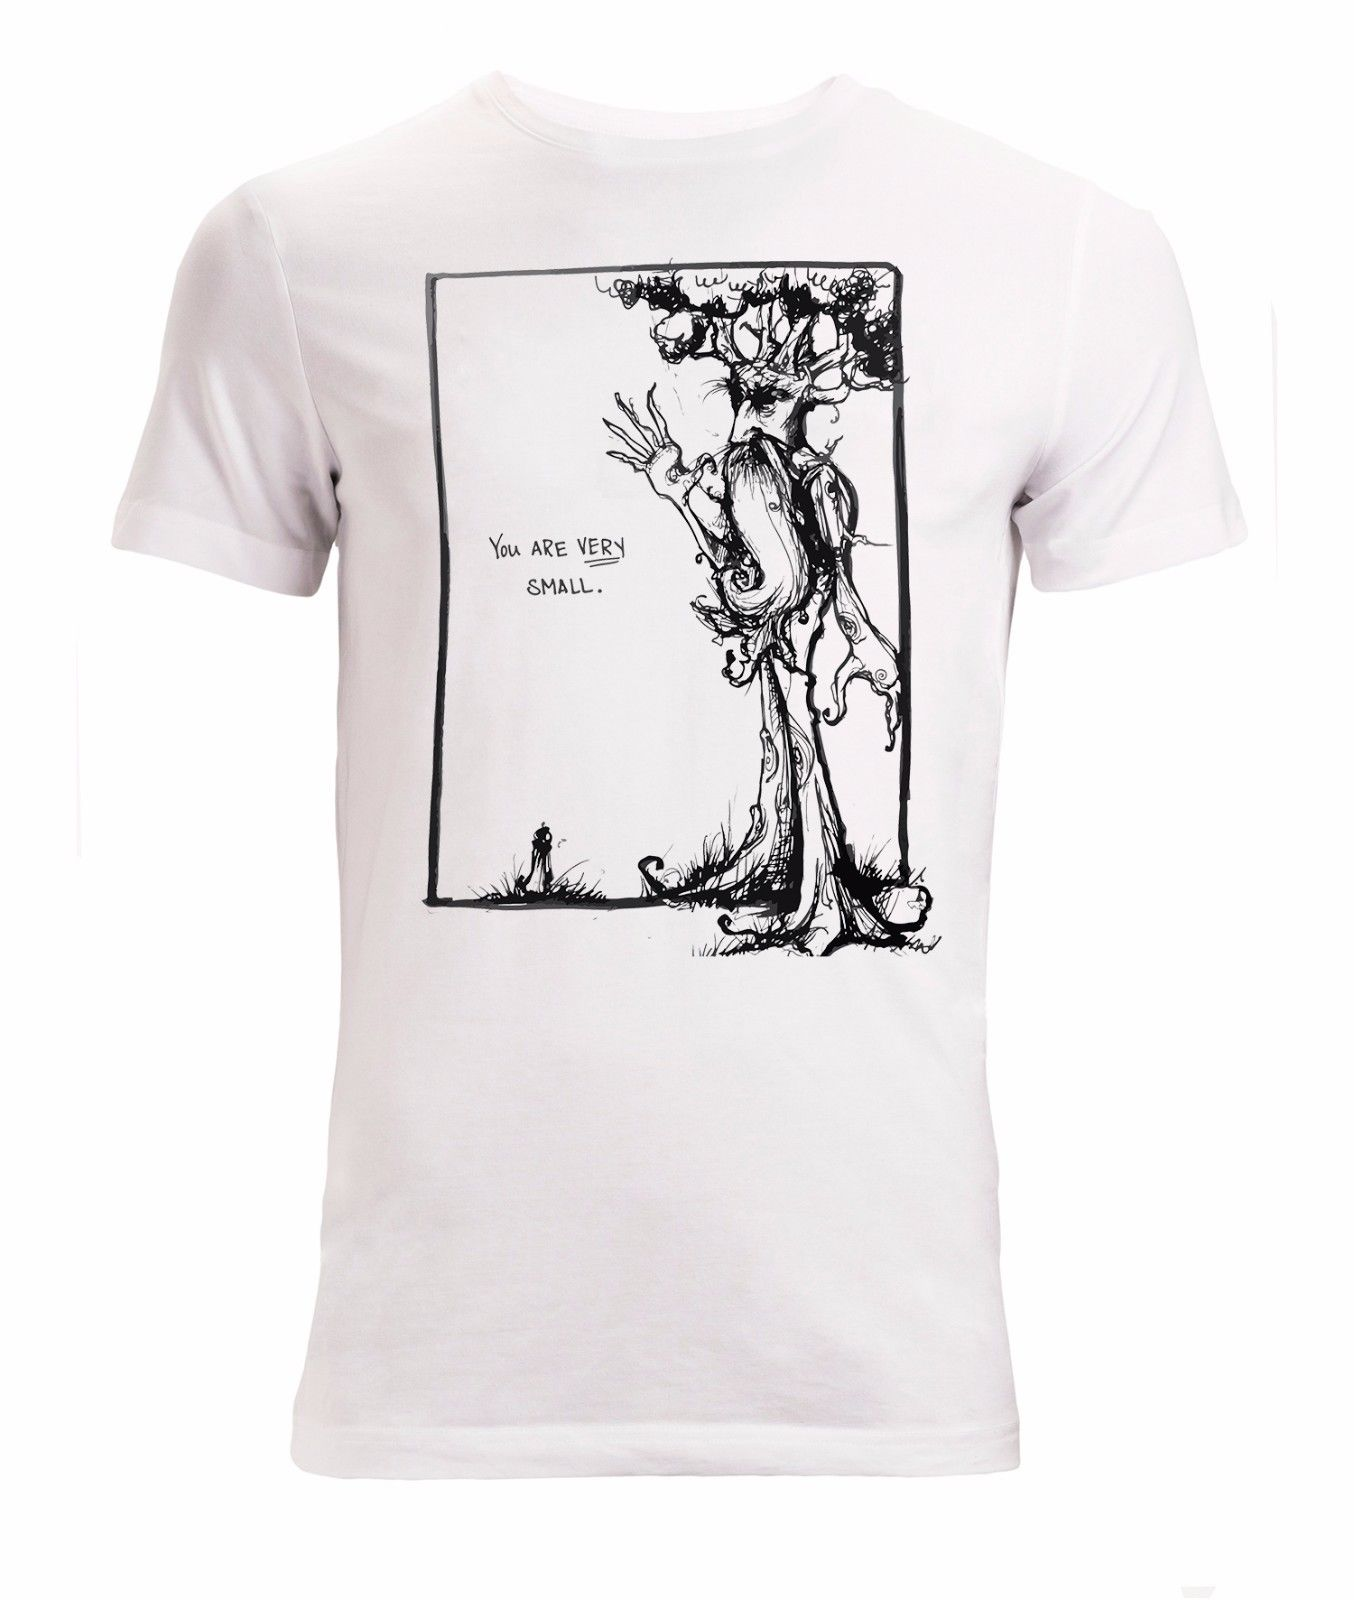 Lord of the Rings a hobbit and ent art funny LotR mens stylish t shirt white Summer Shor ...